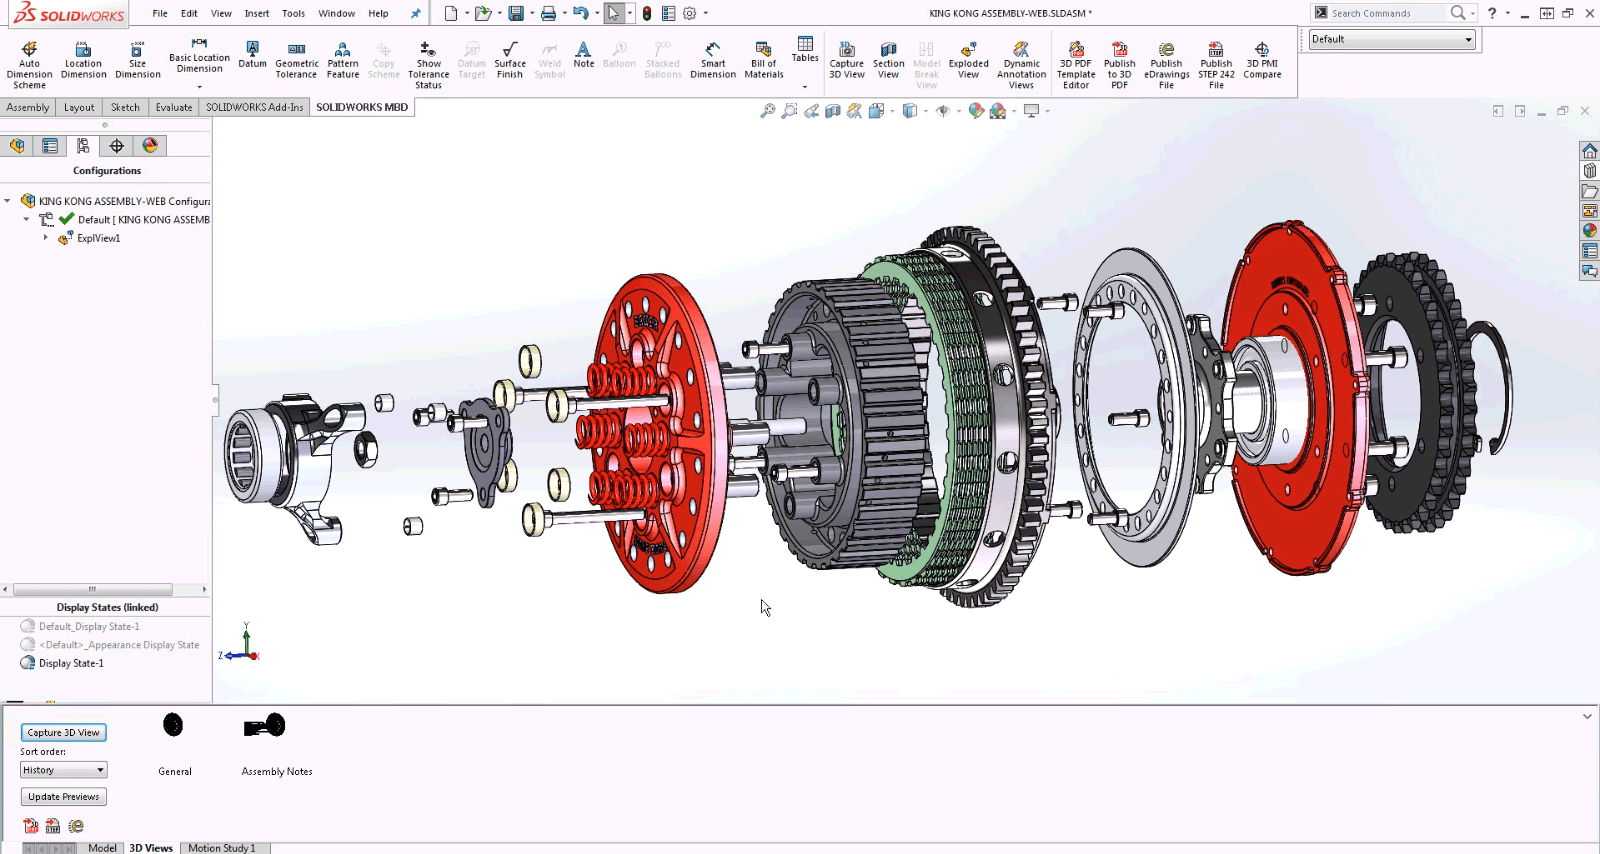 hight resolution of i hope you enjoyed this video please share your feedback in the comment area below to learn more about solidworks mbd please watch this 22 minute webcast